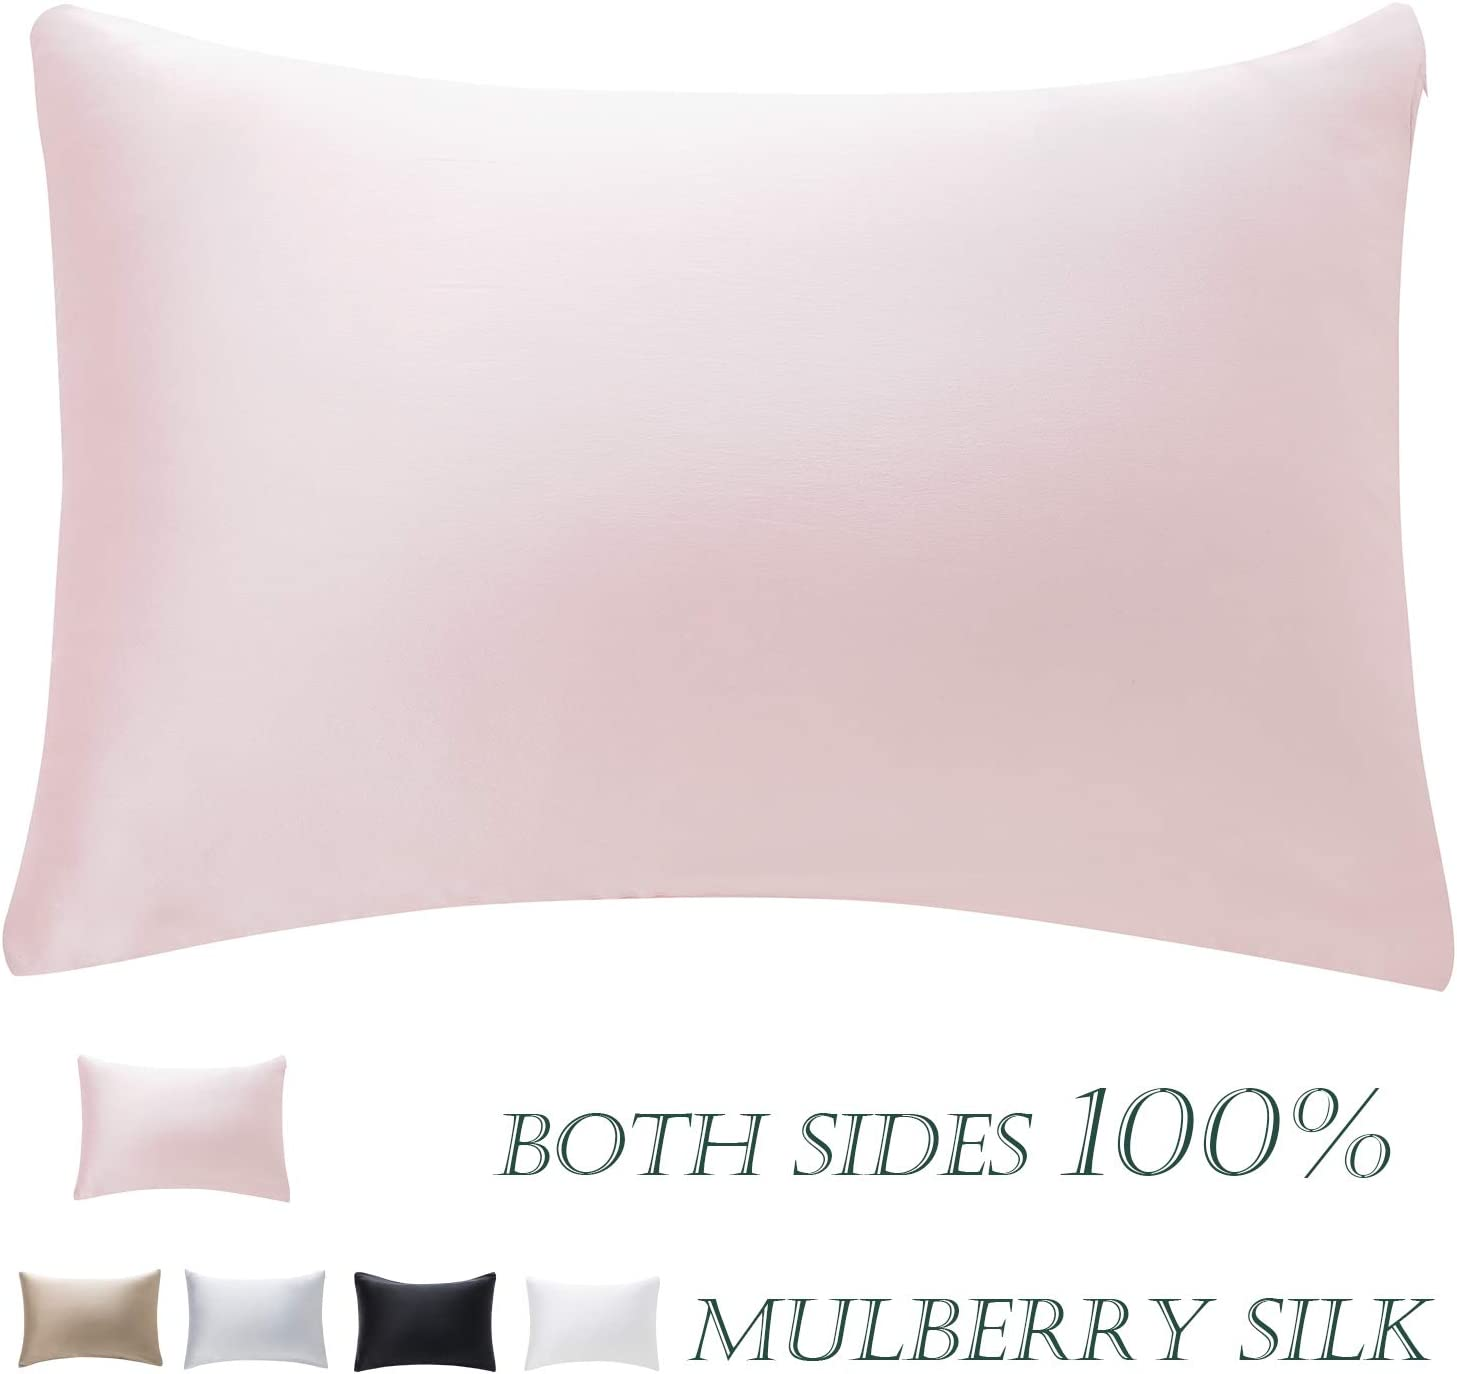 HandSun Direct stock discount Now free shipping 100% Mulberry Silk Pillowcase for Both Si and Skin Hair